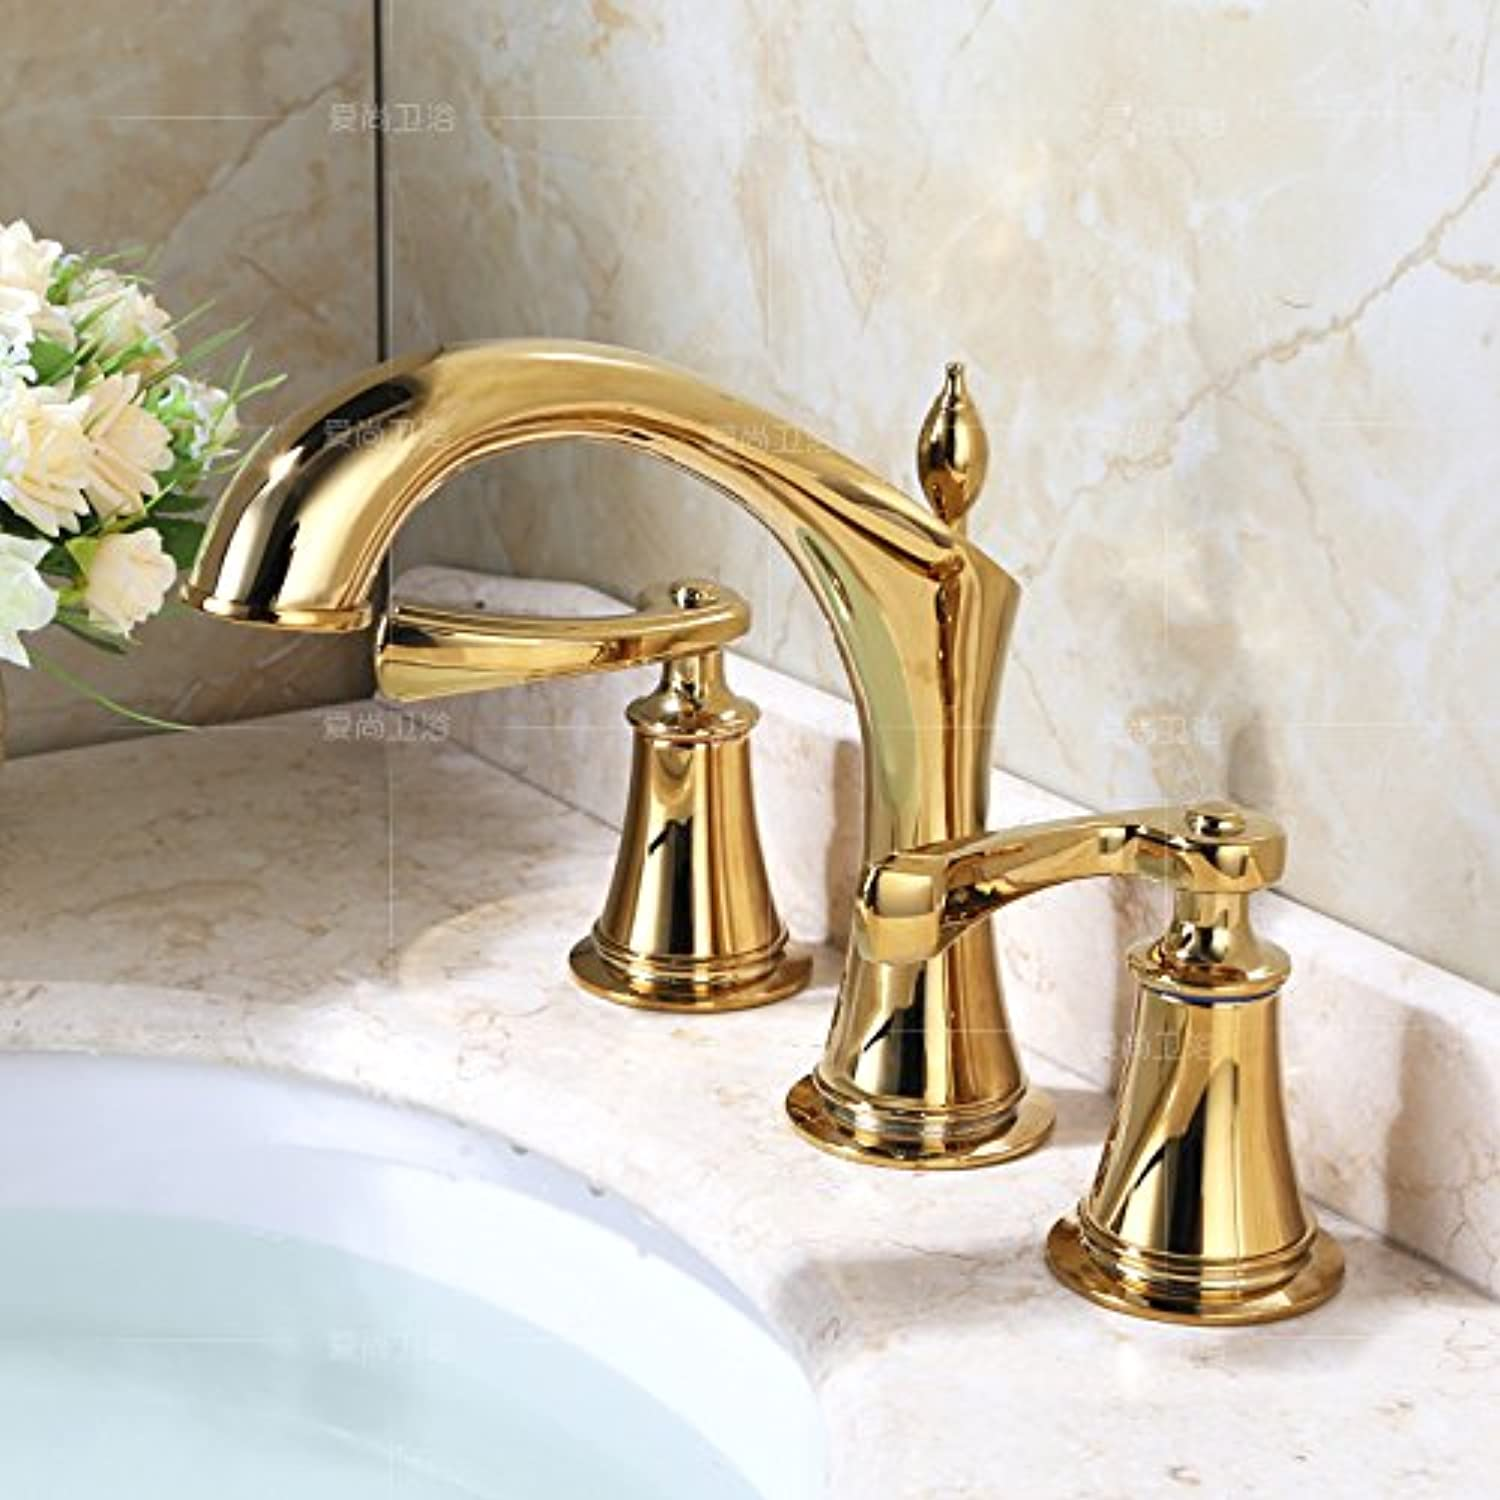 NewBorn Faucet Kitchen Bathroom Sink Mixer Tap All Copper Pull-Down Water Tap Hot Cold Dish Pool Fittings Stretch Wash Dishes golden Taps Basin Taps On The Console Table Basin gold Plated + Hoses